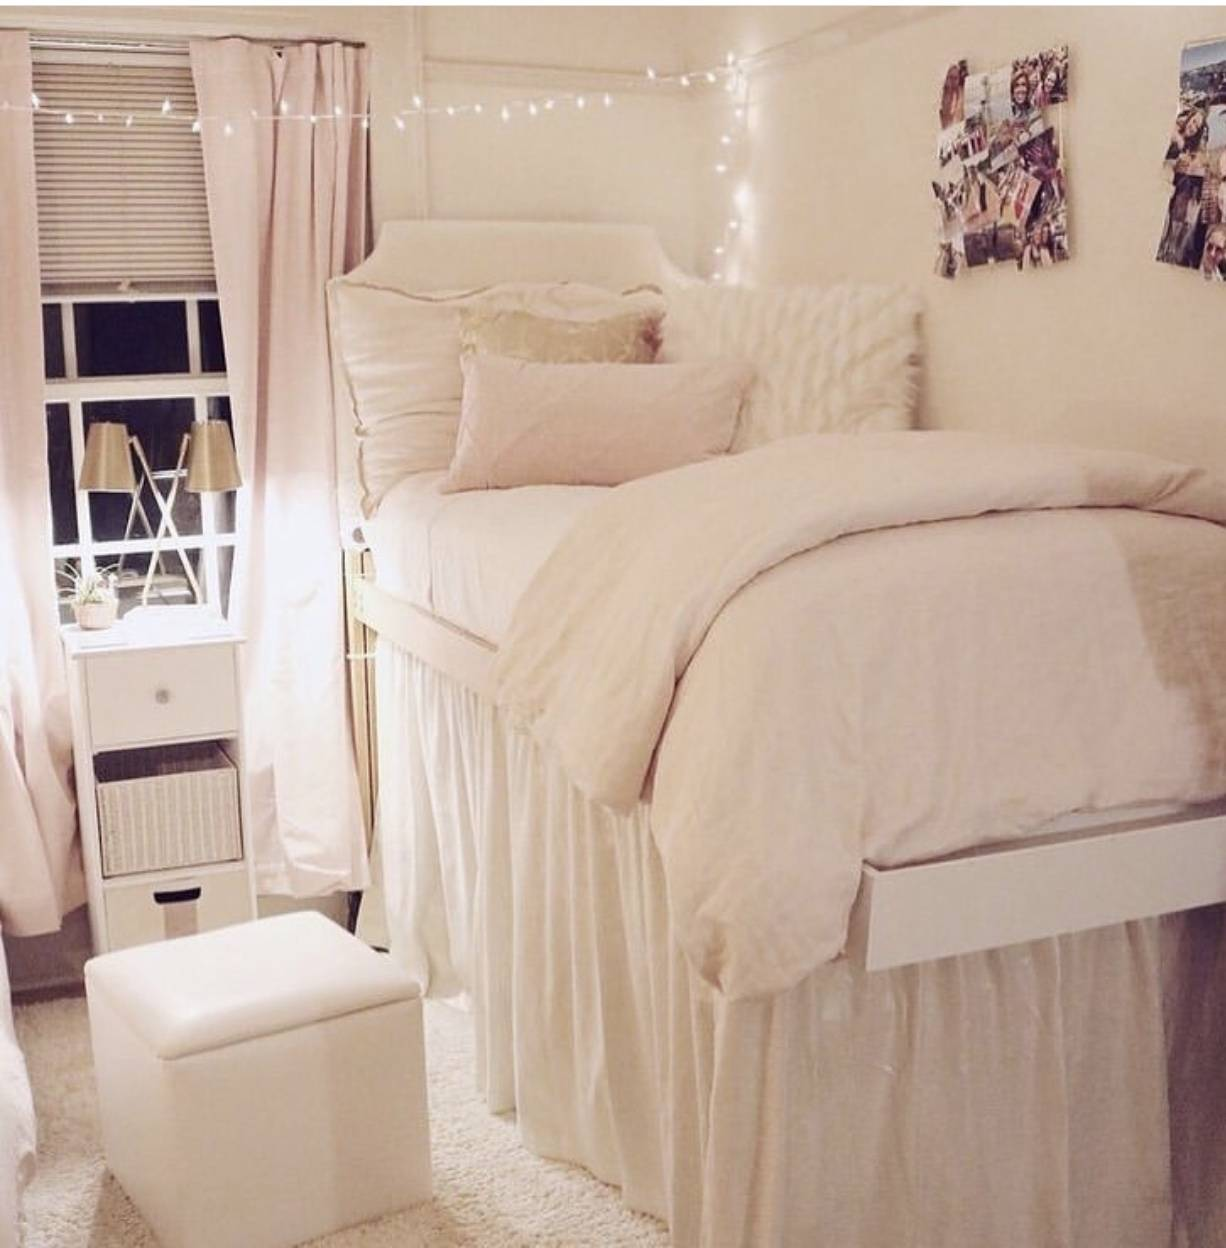 VSCO Room Ideas: How to Create a Cute Vsco Room - The Pink ...